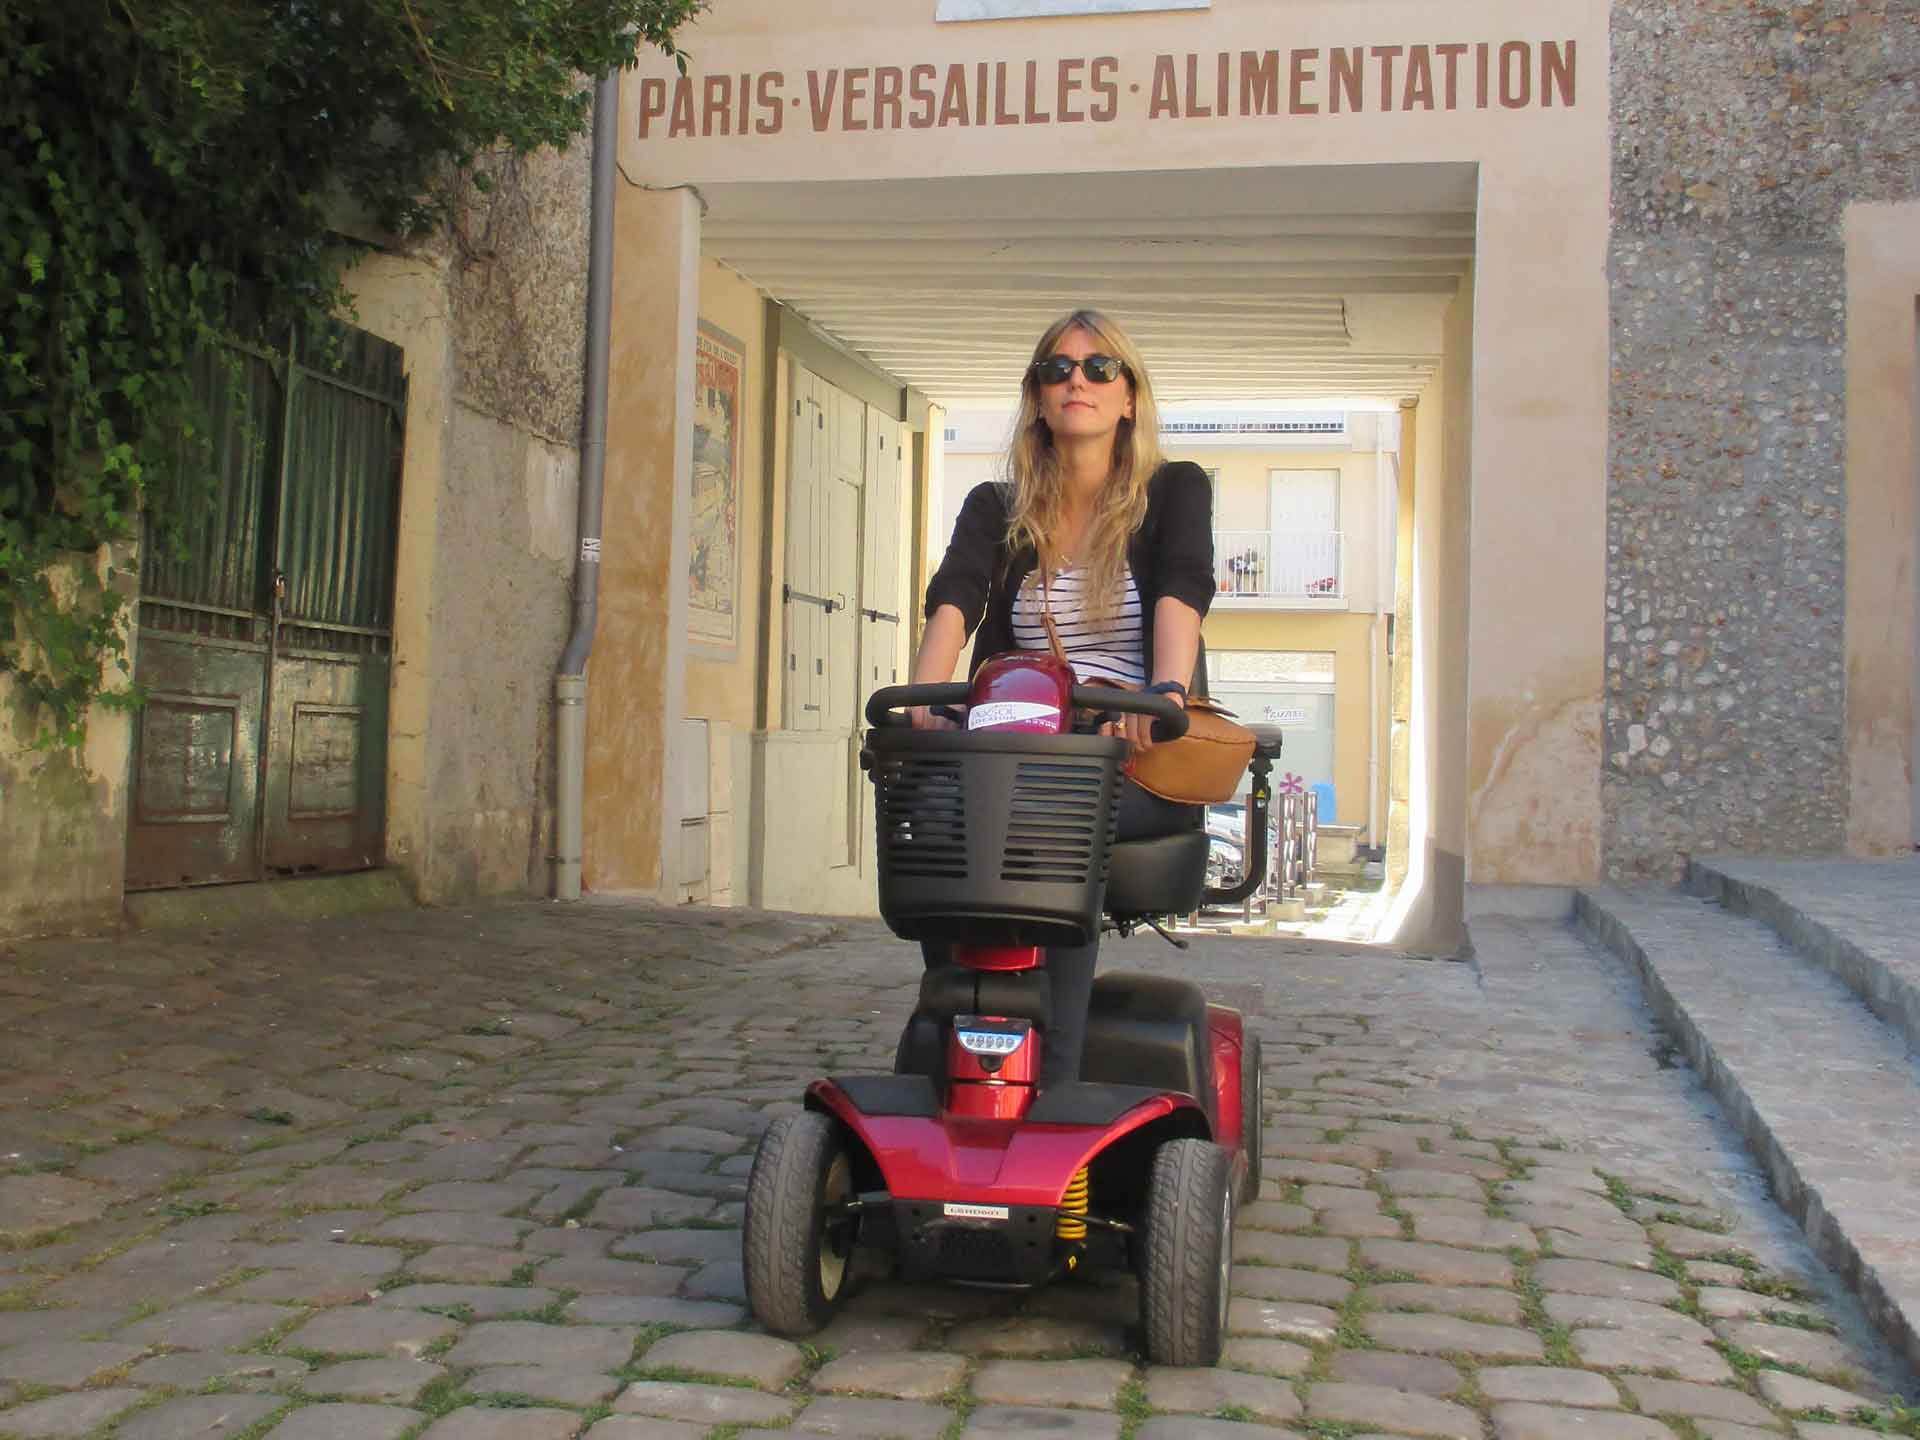 Hire an electric mobility scooter for the handicapped - Ideal for tourism and visiting in France